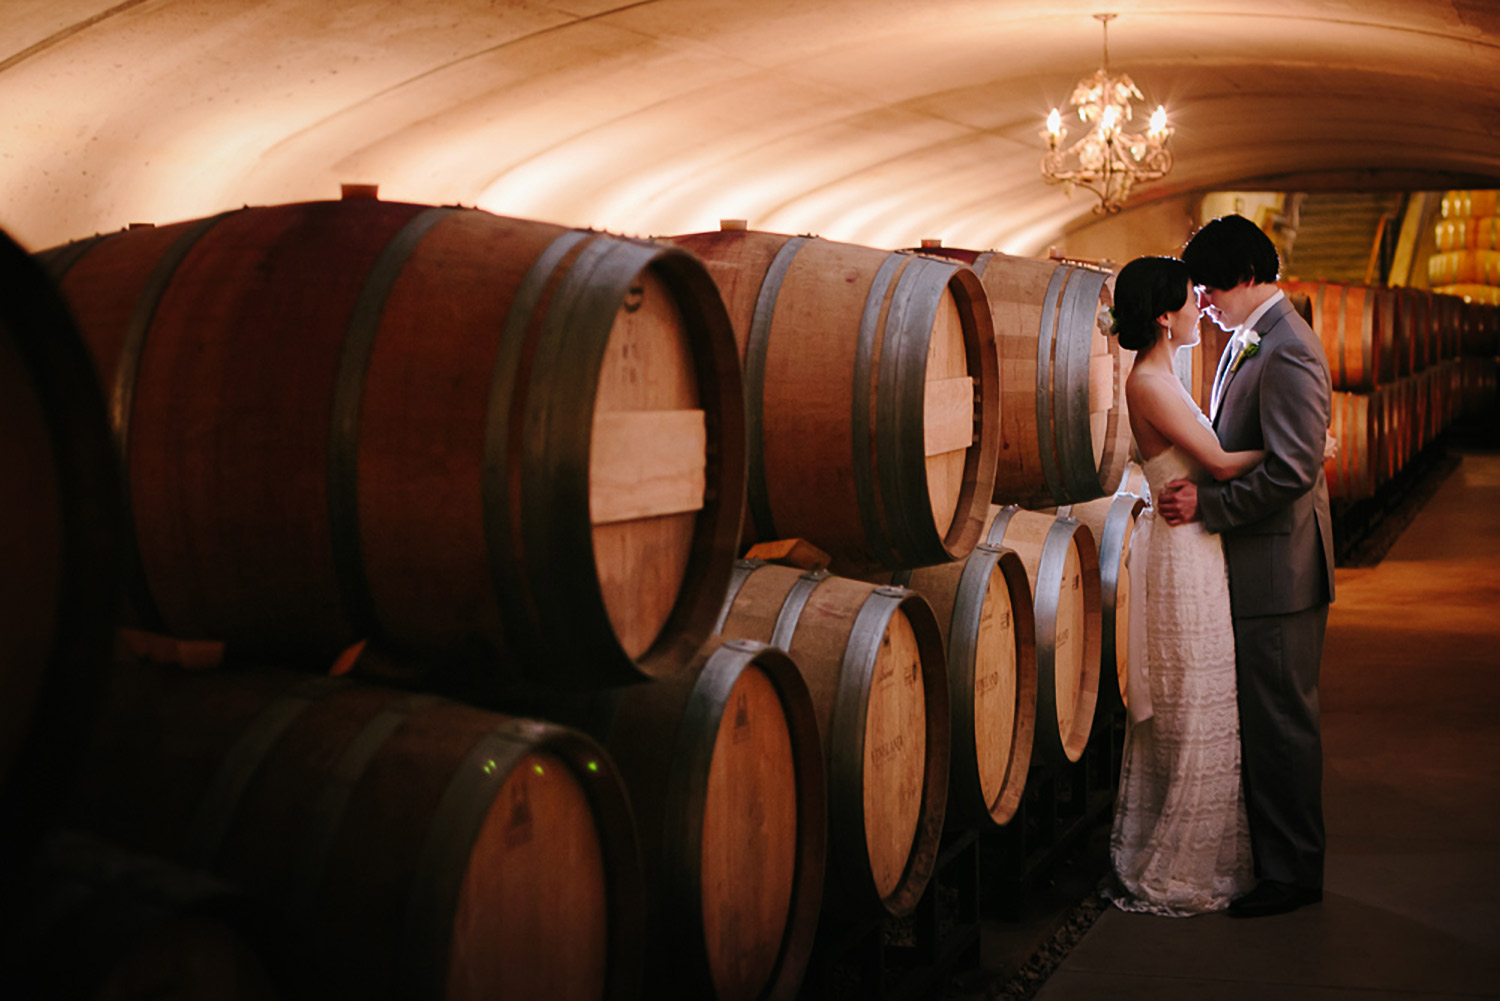 Vineland-Estates-Wedding-Vineyard-Bride-Photo-By-Tamara-Lockwood-Photography-013.jpg